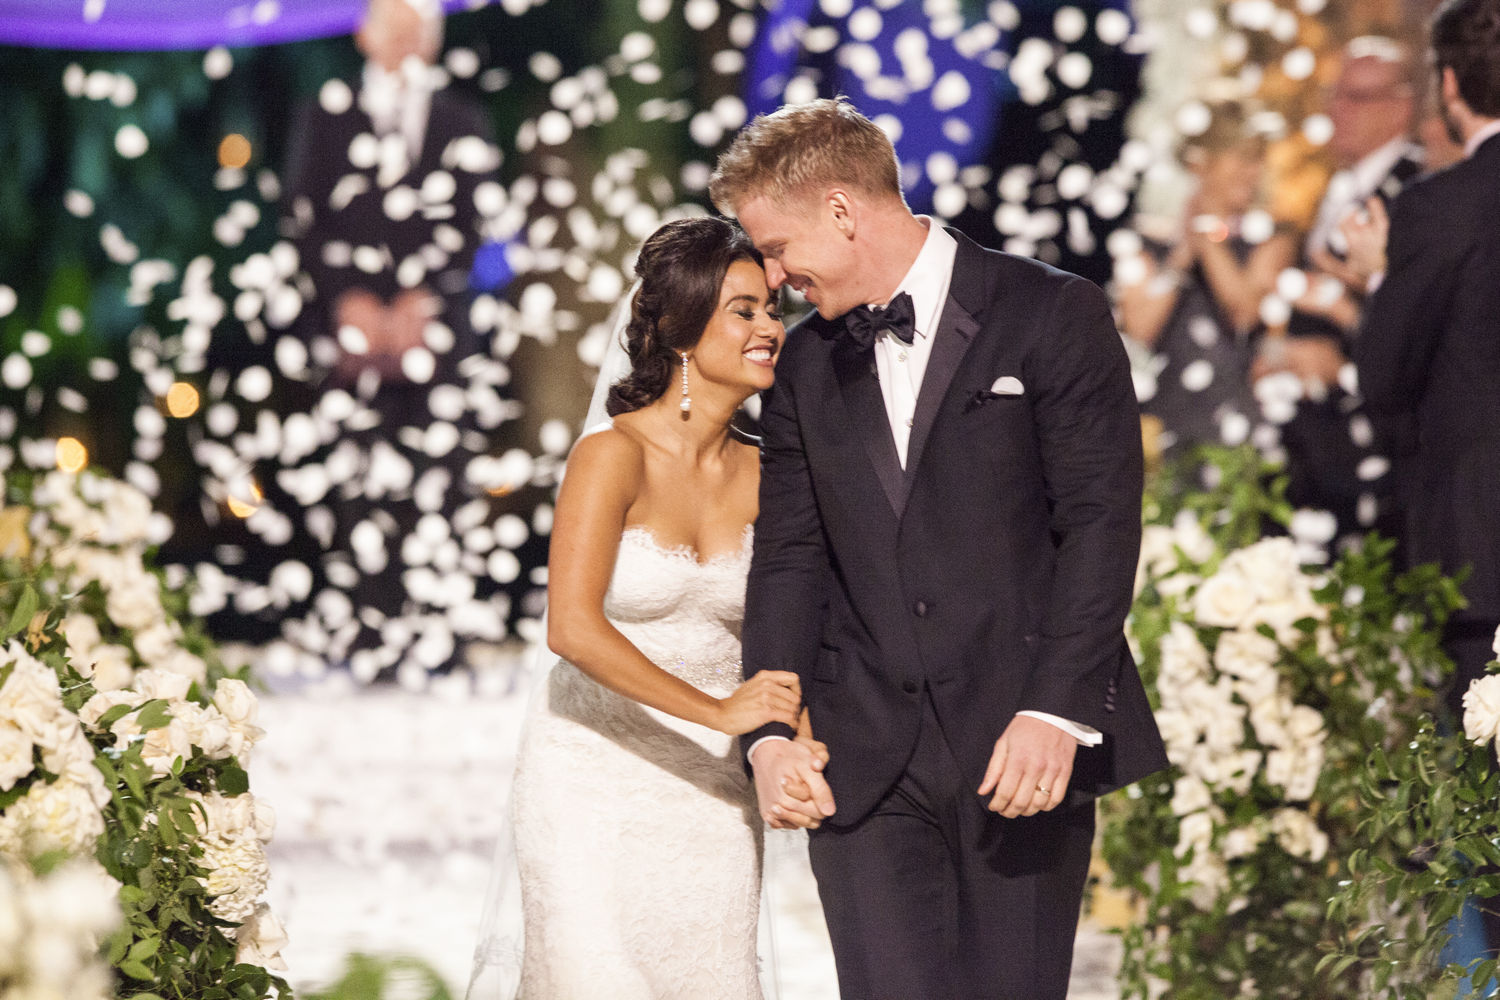 wedding-abc-bachelor-sean-lowe-catherine-guidici-johnandjoseph157.jpg